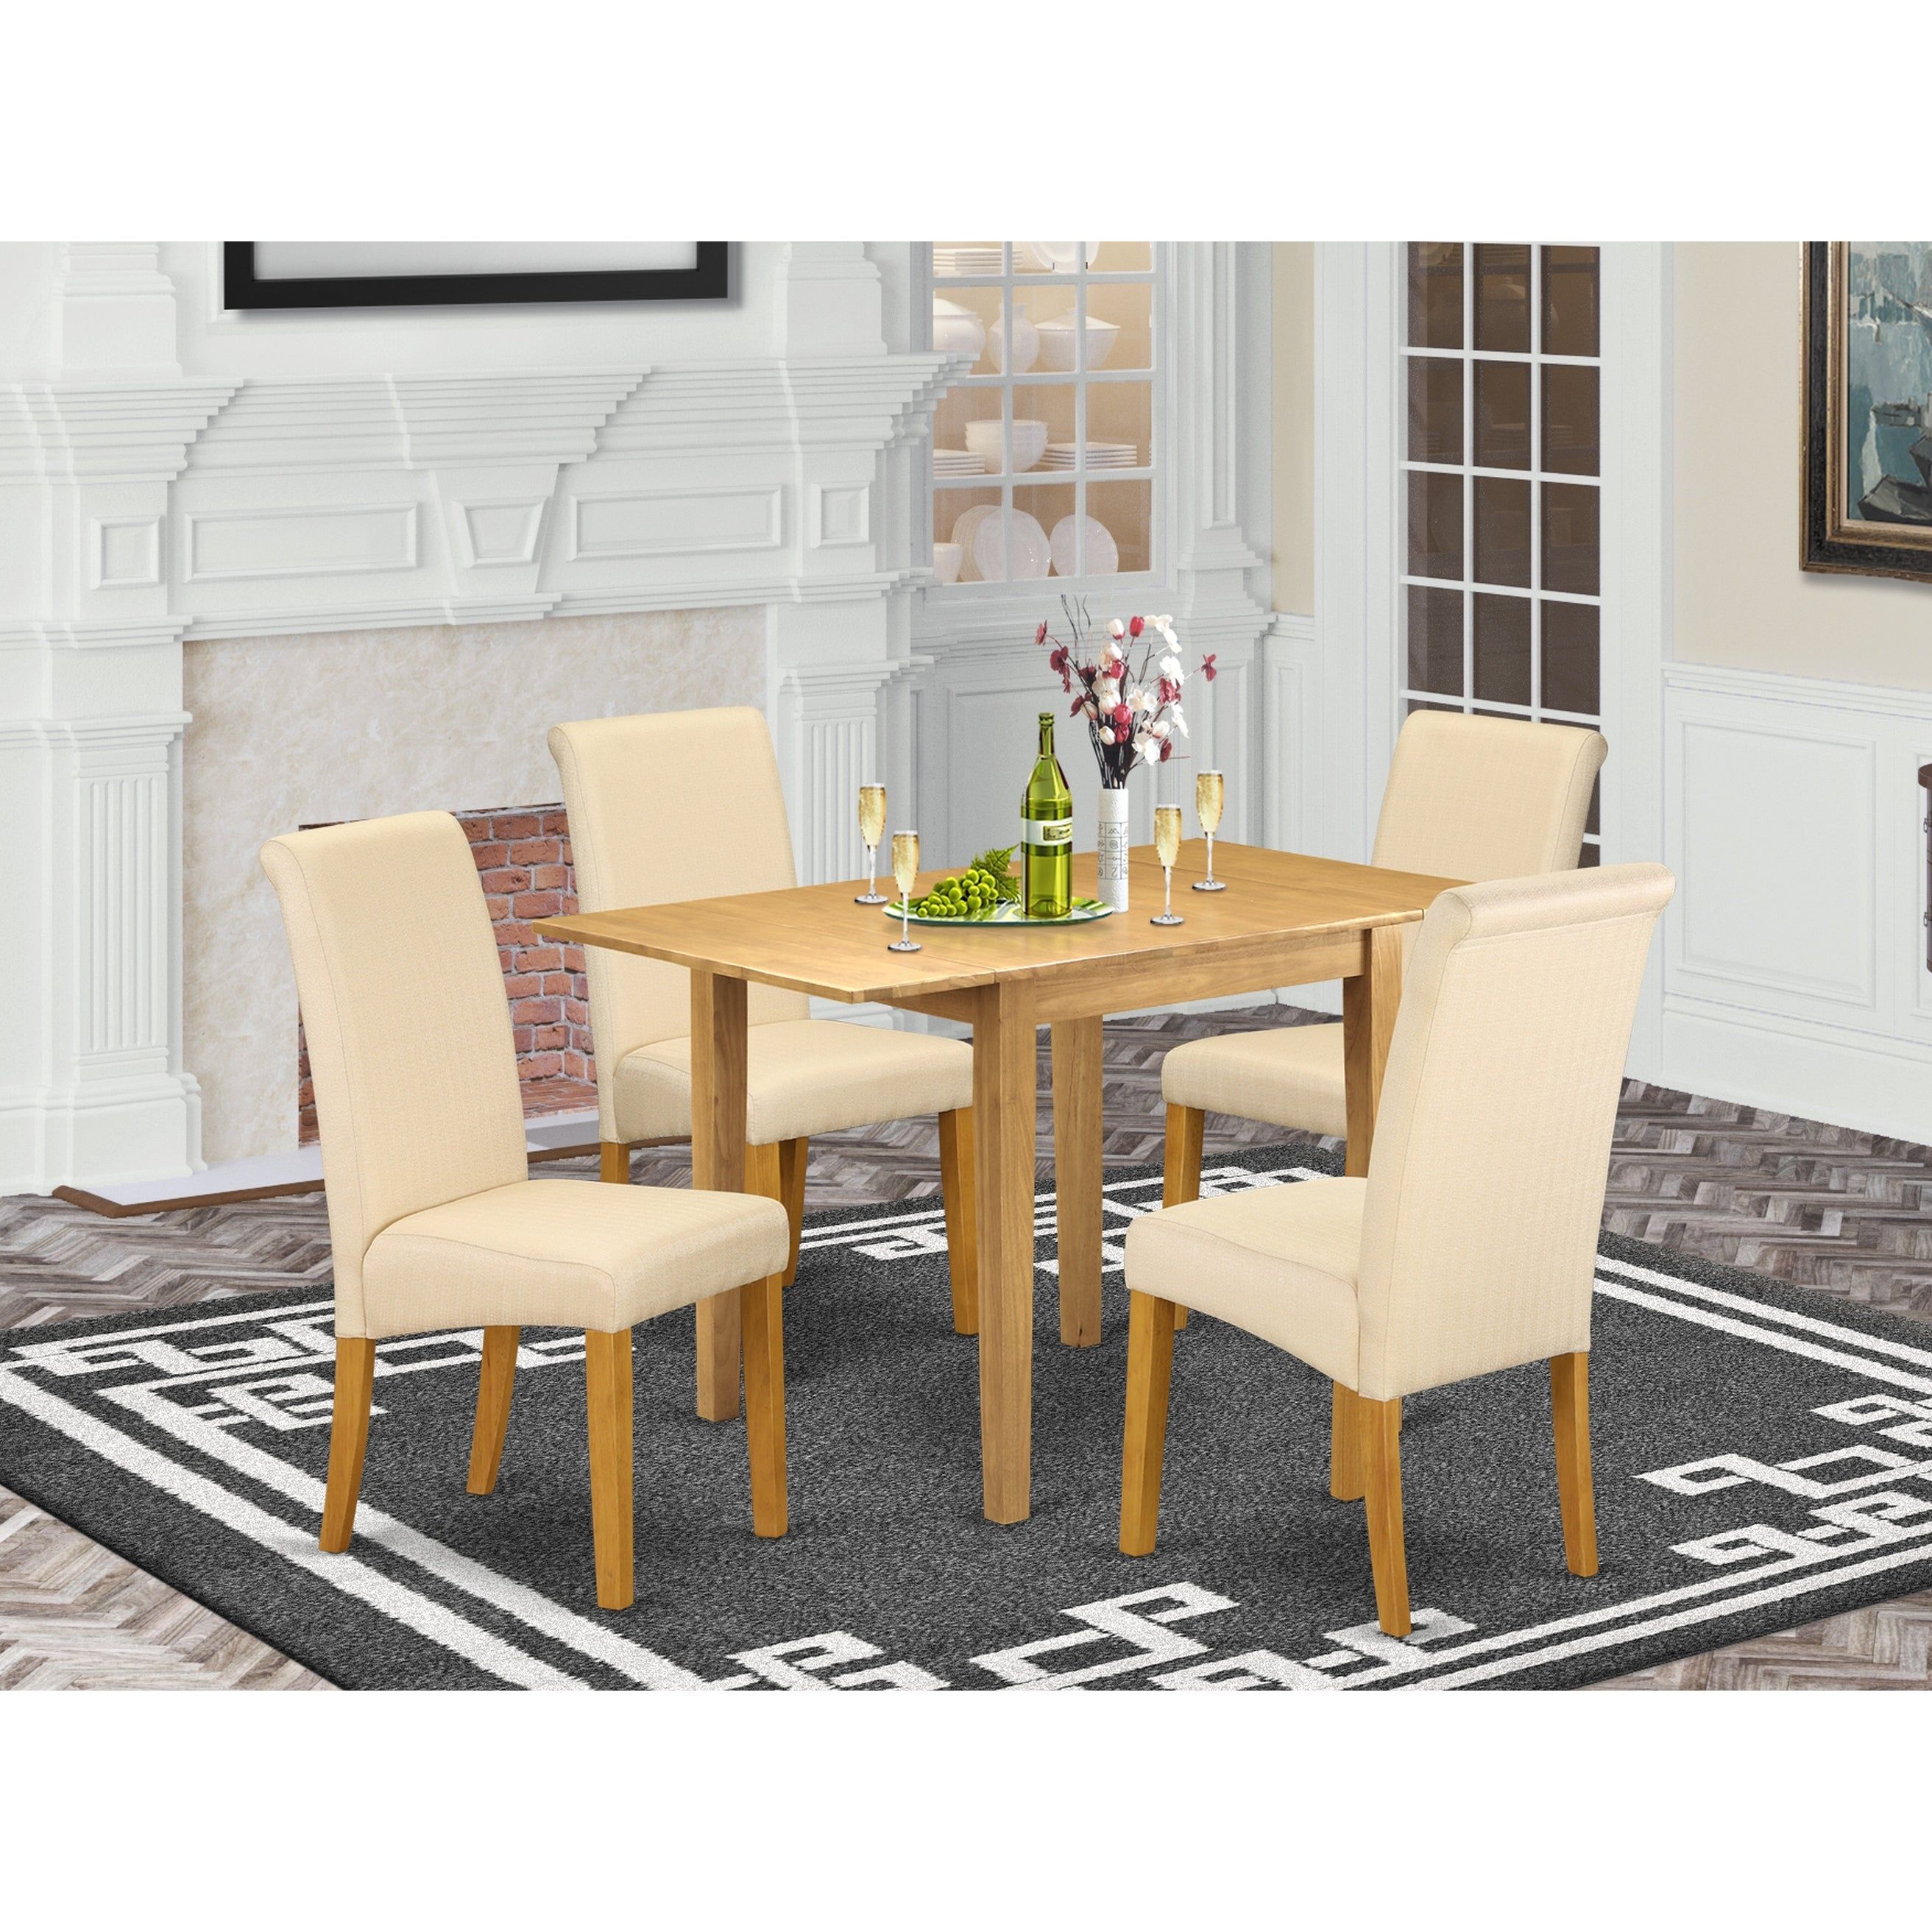 Rectangle Breakfast Table And Wood Dining Room Chairs With Light Beige Color Linen Fabric Seat Number Of Chairs Option Overstock 32448428